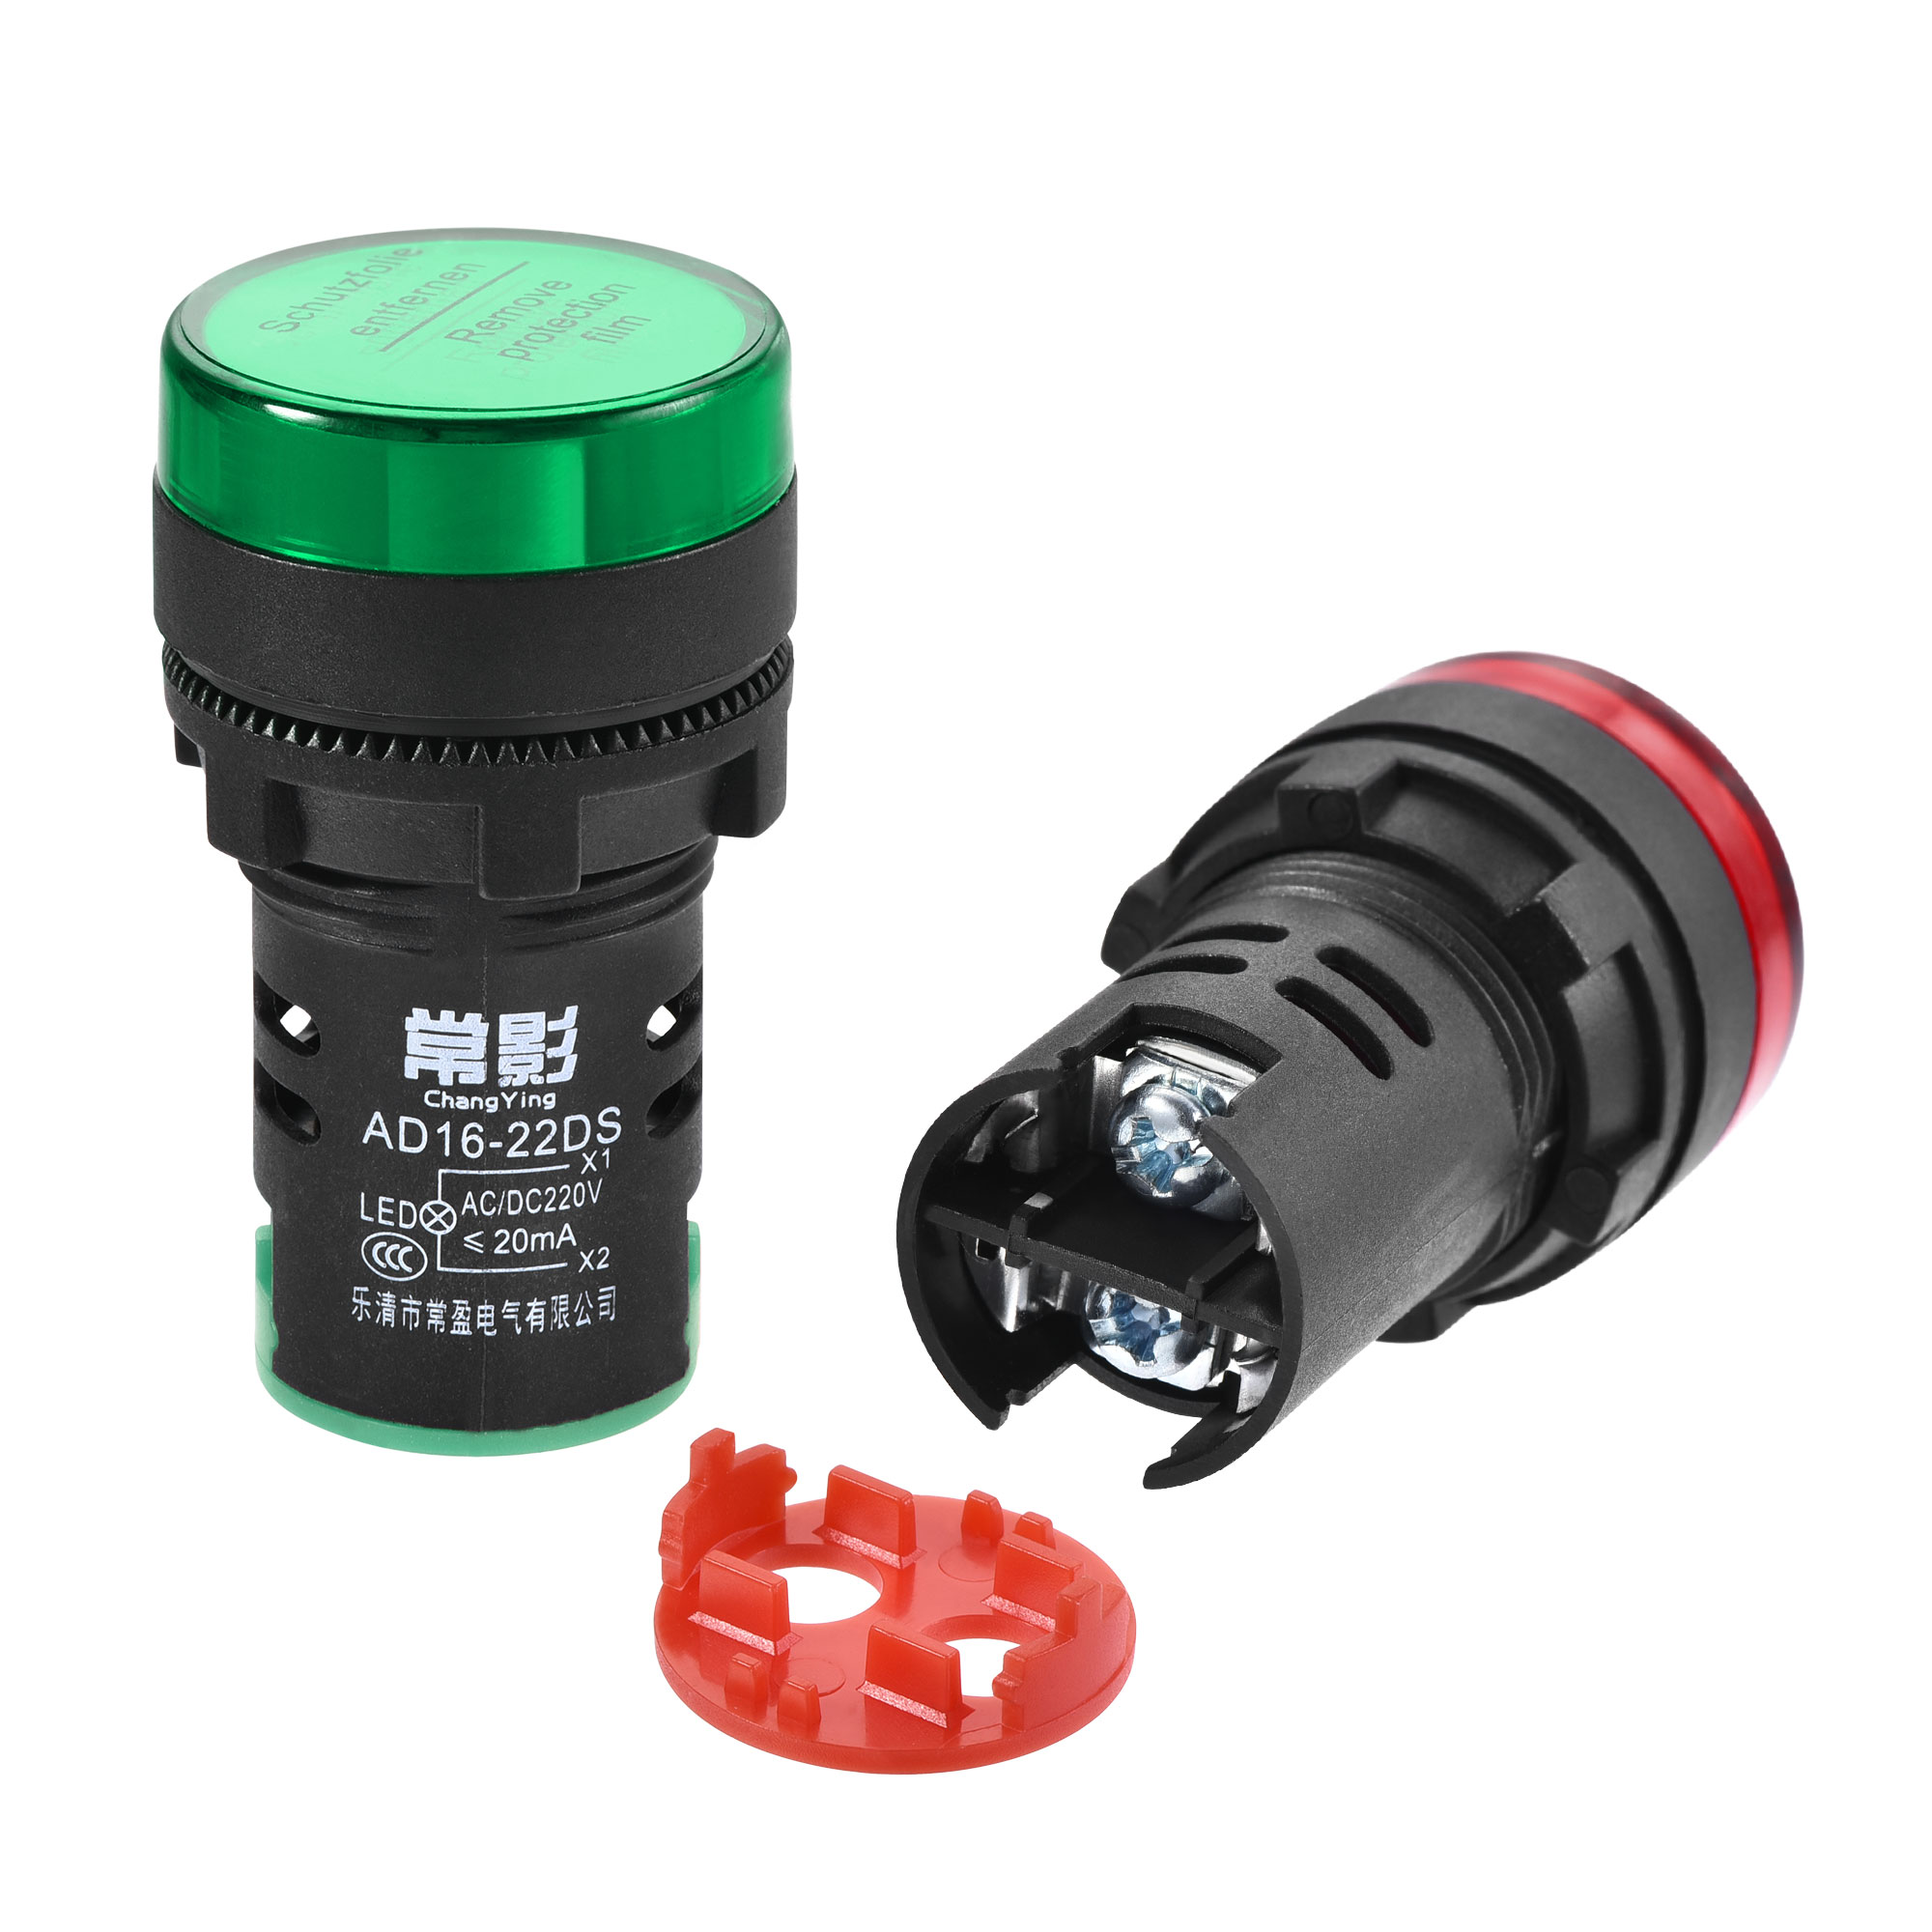 AC/DC 220V Indicator Lights, Dust Cover IP54, Red Green - 2 Colors, 8Pcs